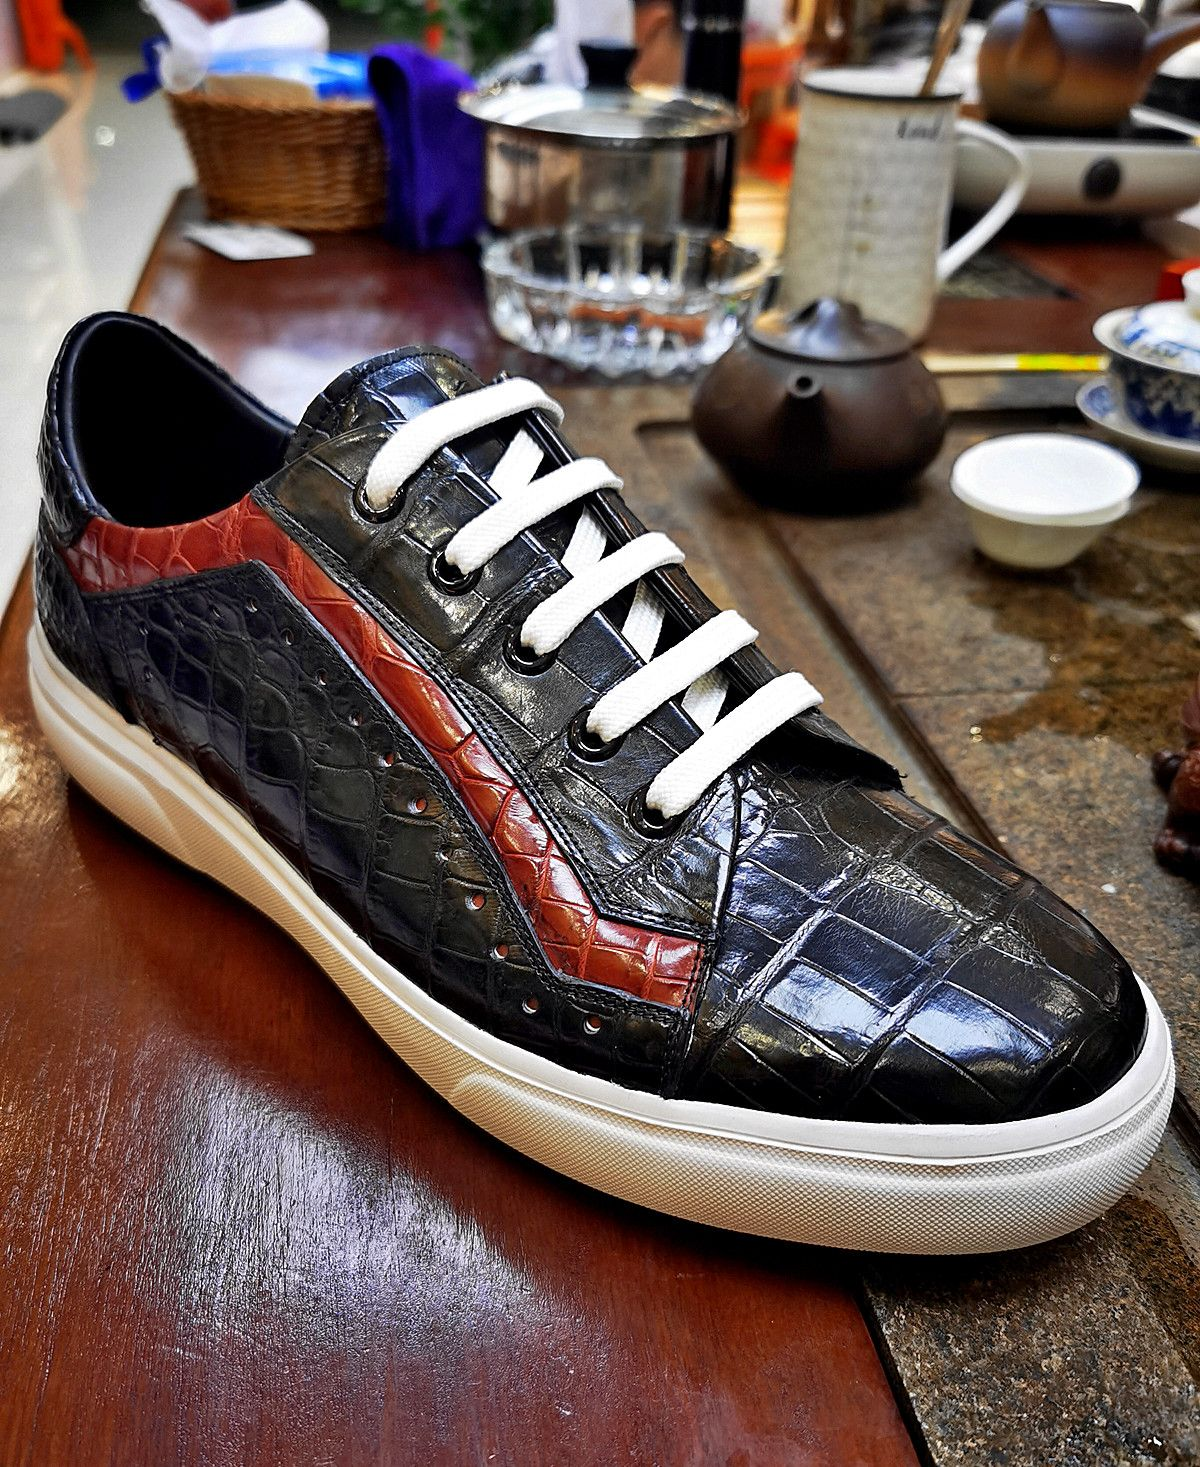 Alligator sneakers for sale in 2020